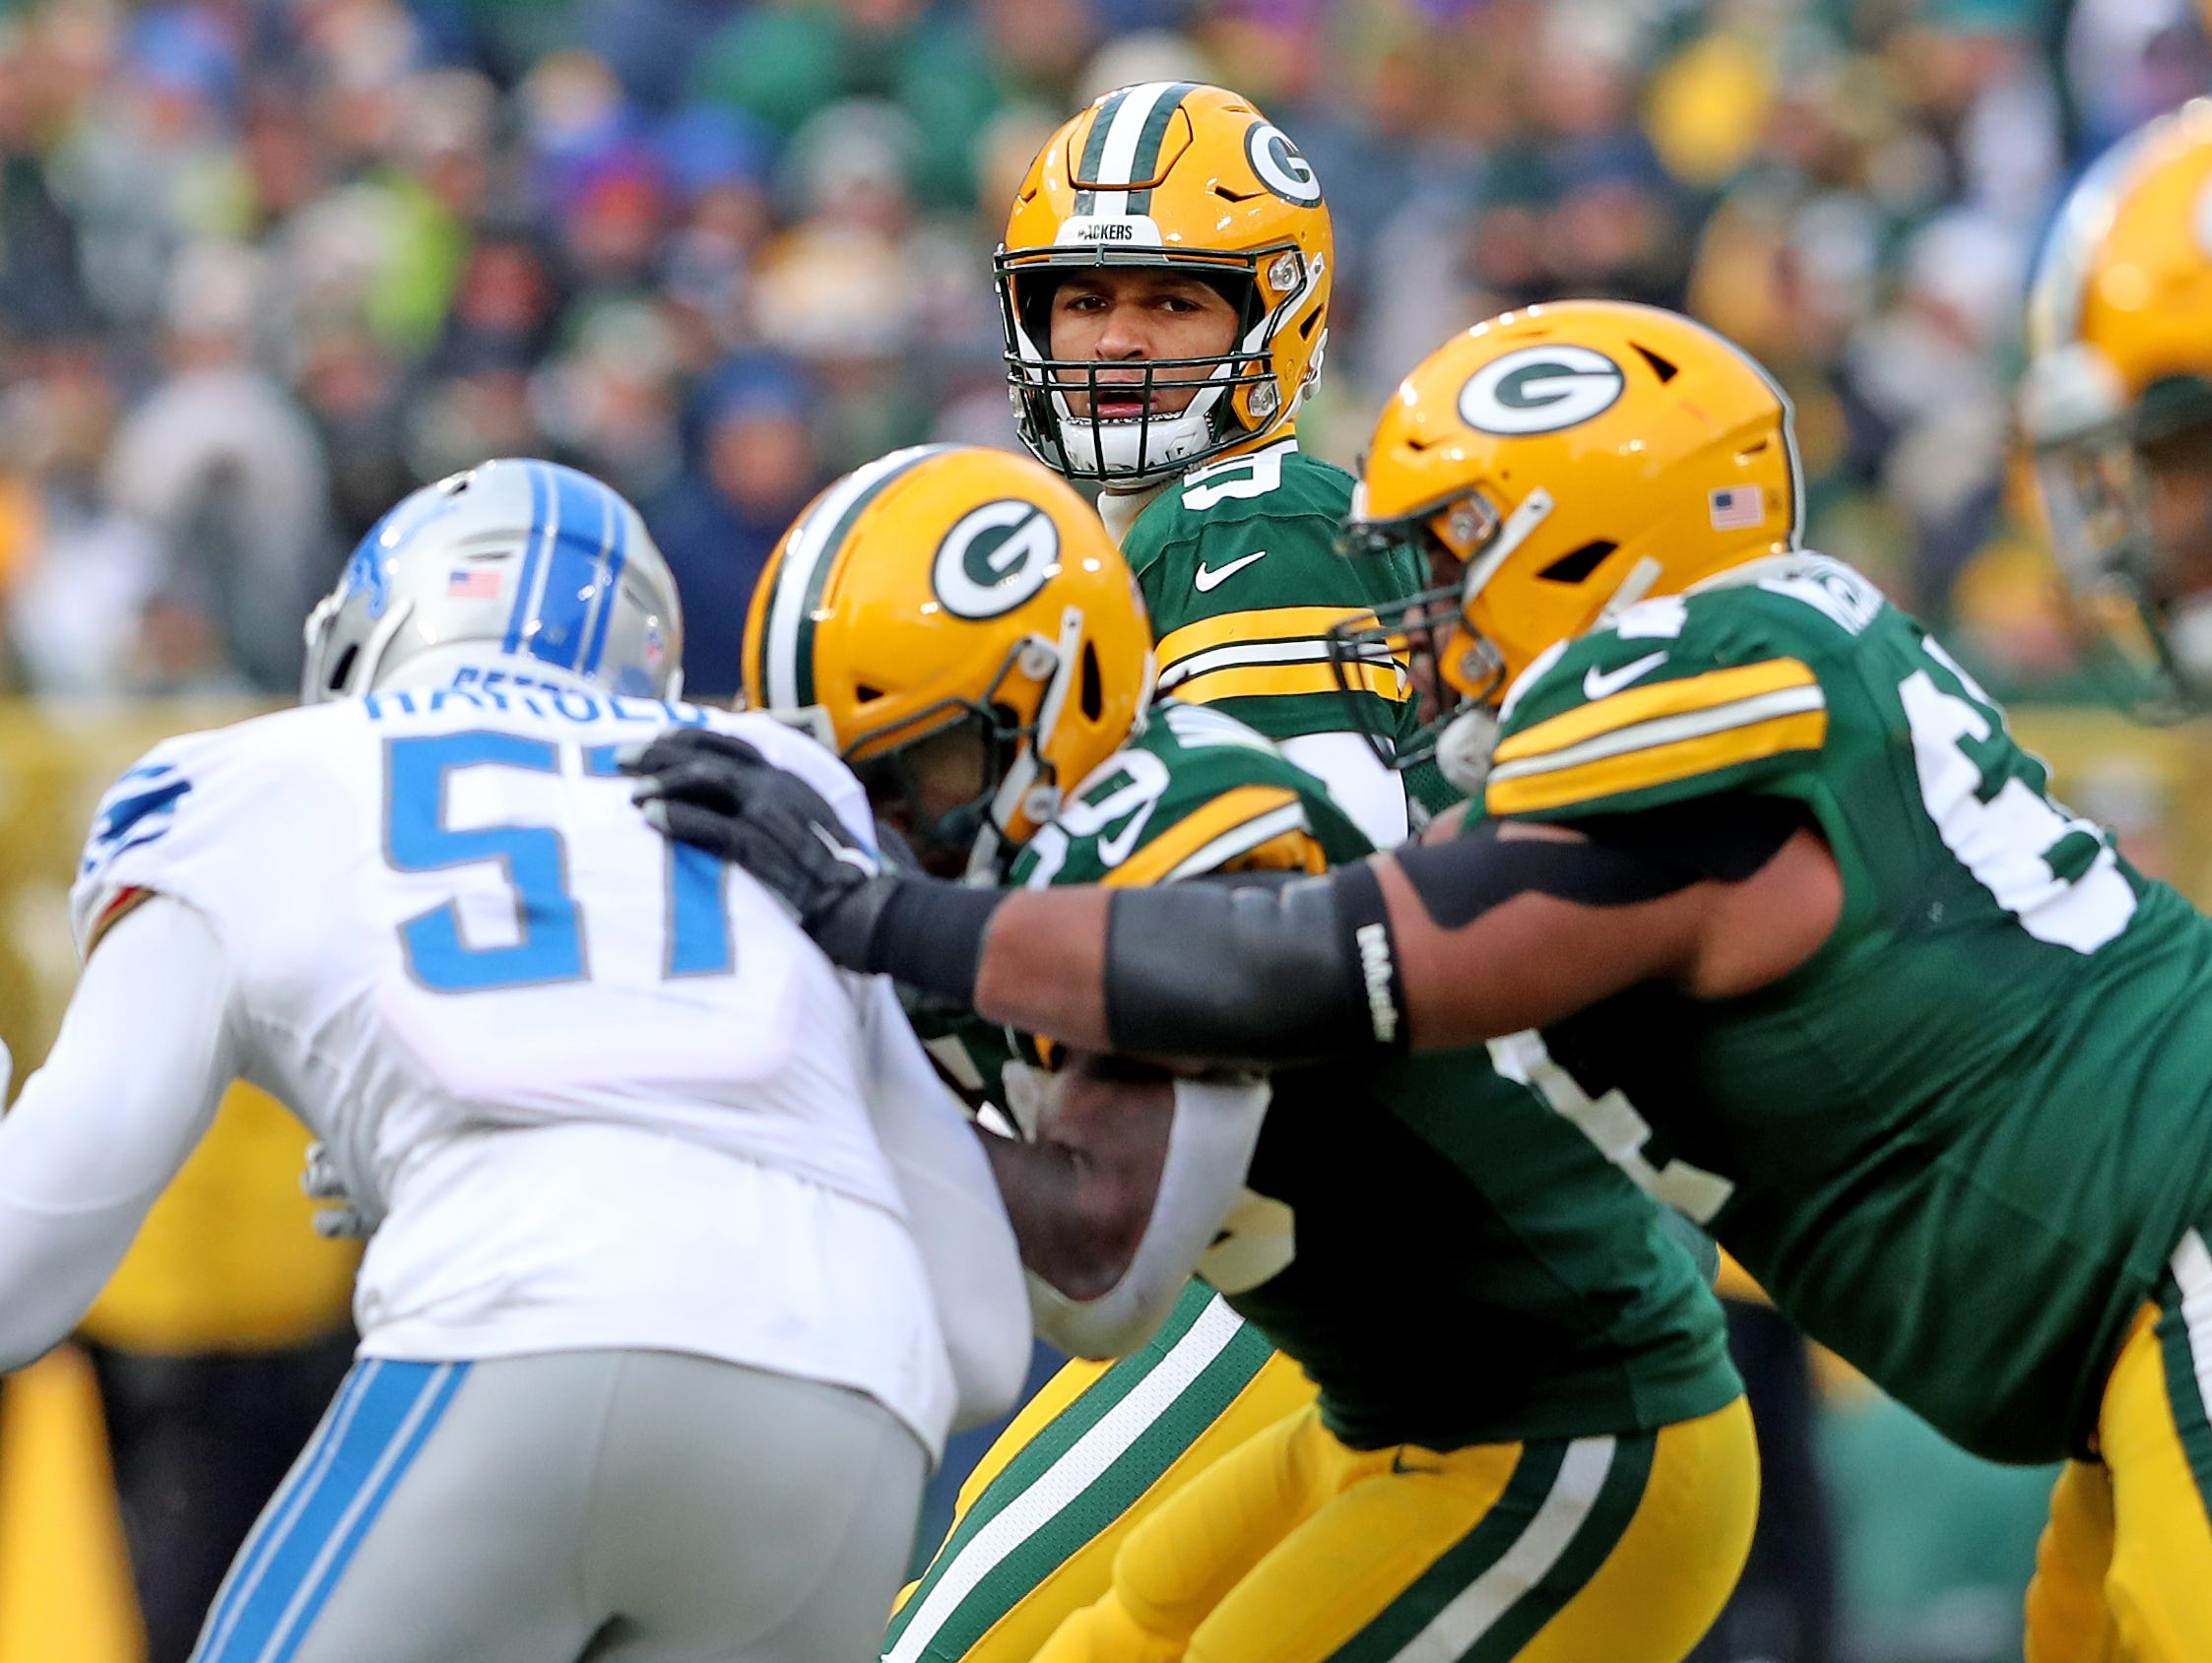 Green Bay Packers quarterback DeShone Kizer (9) looks for an open receiver against the Detroit Lions at Lambeau Field Sunday, December 30, 2018 in Green Bay, Wis.